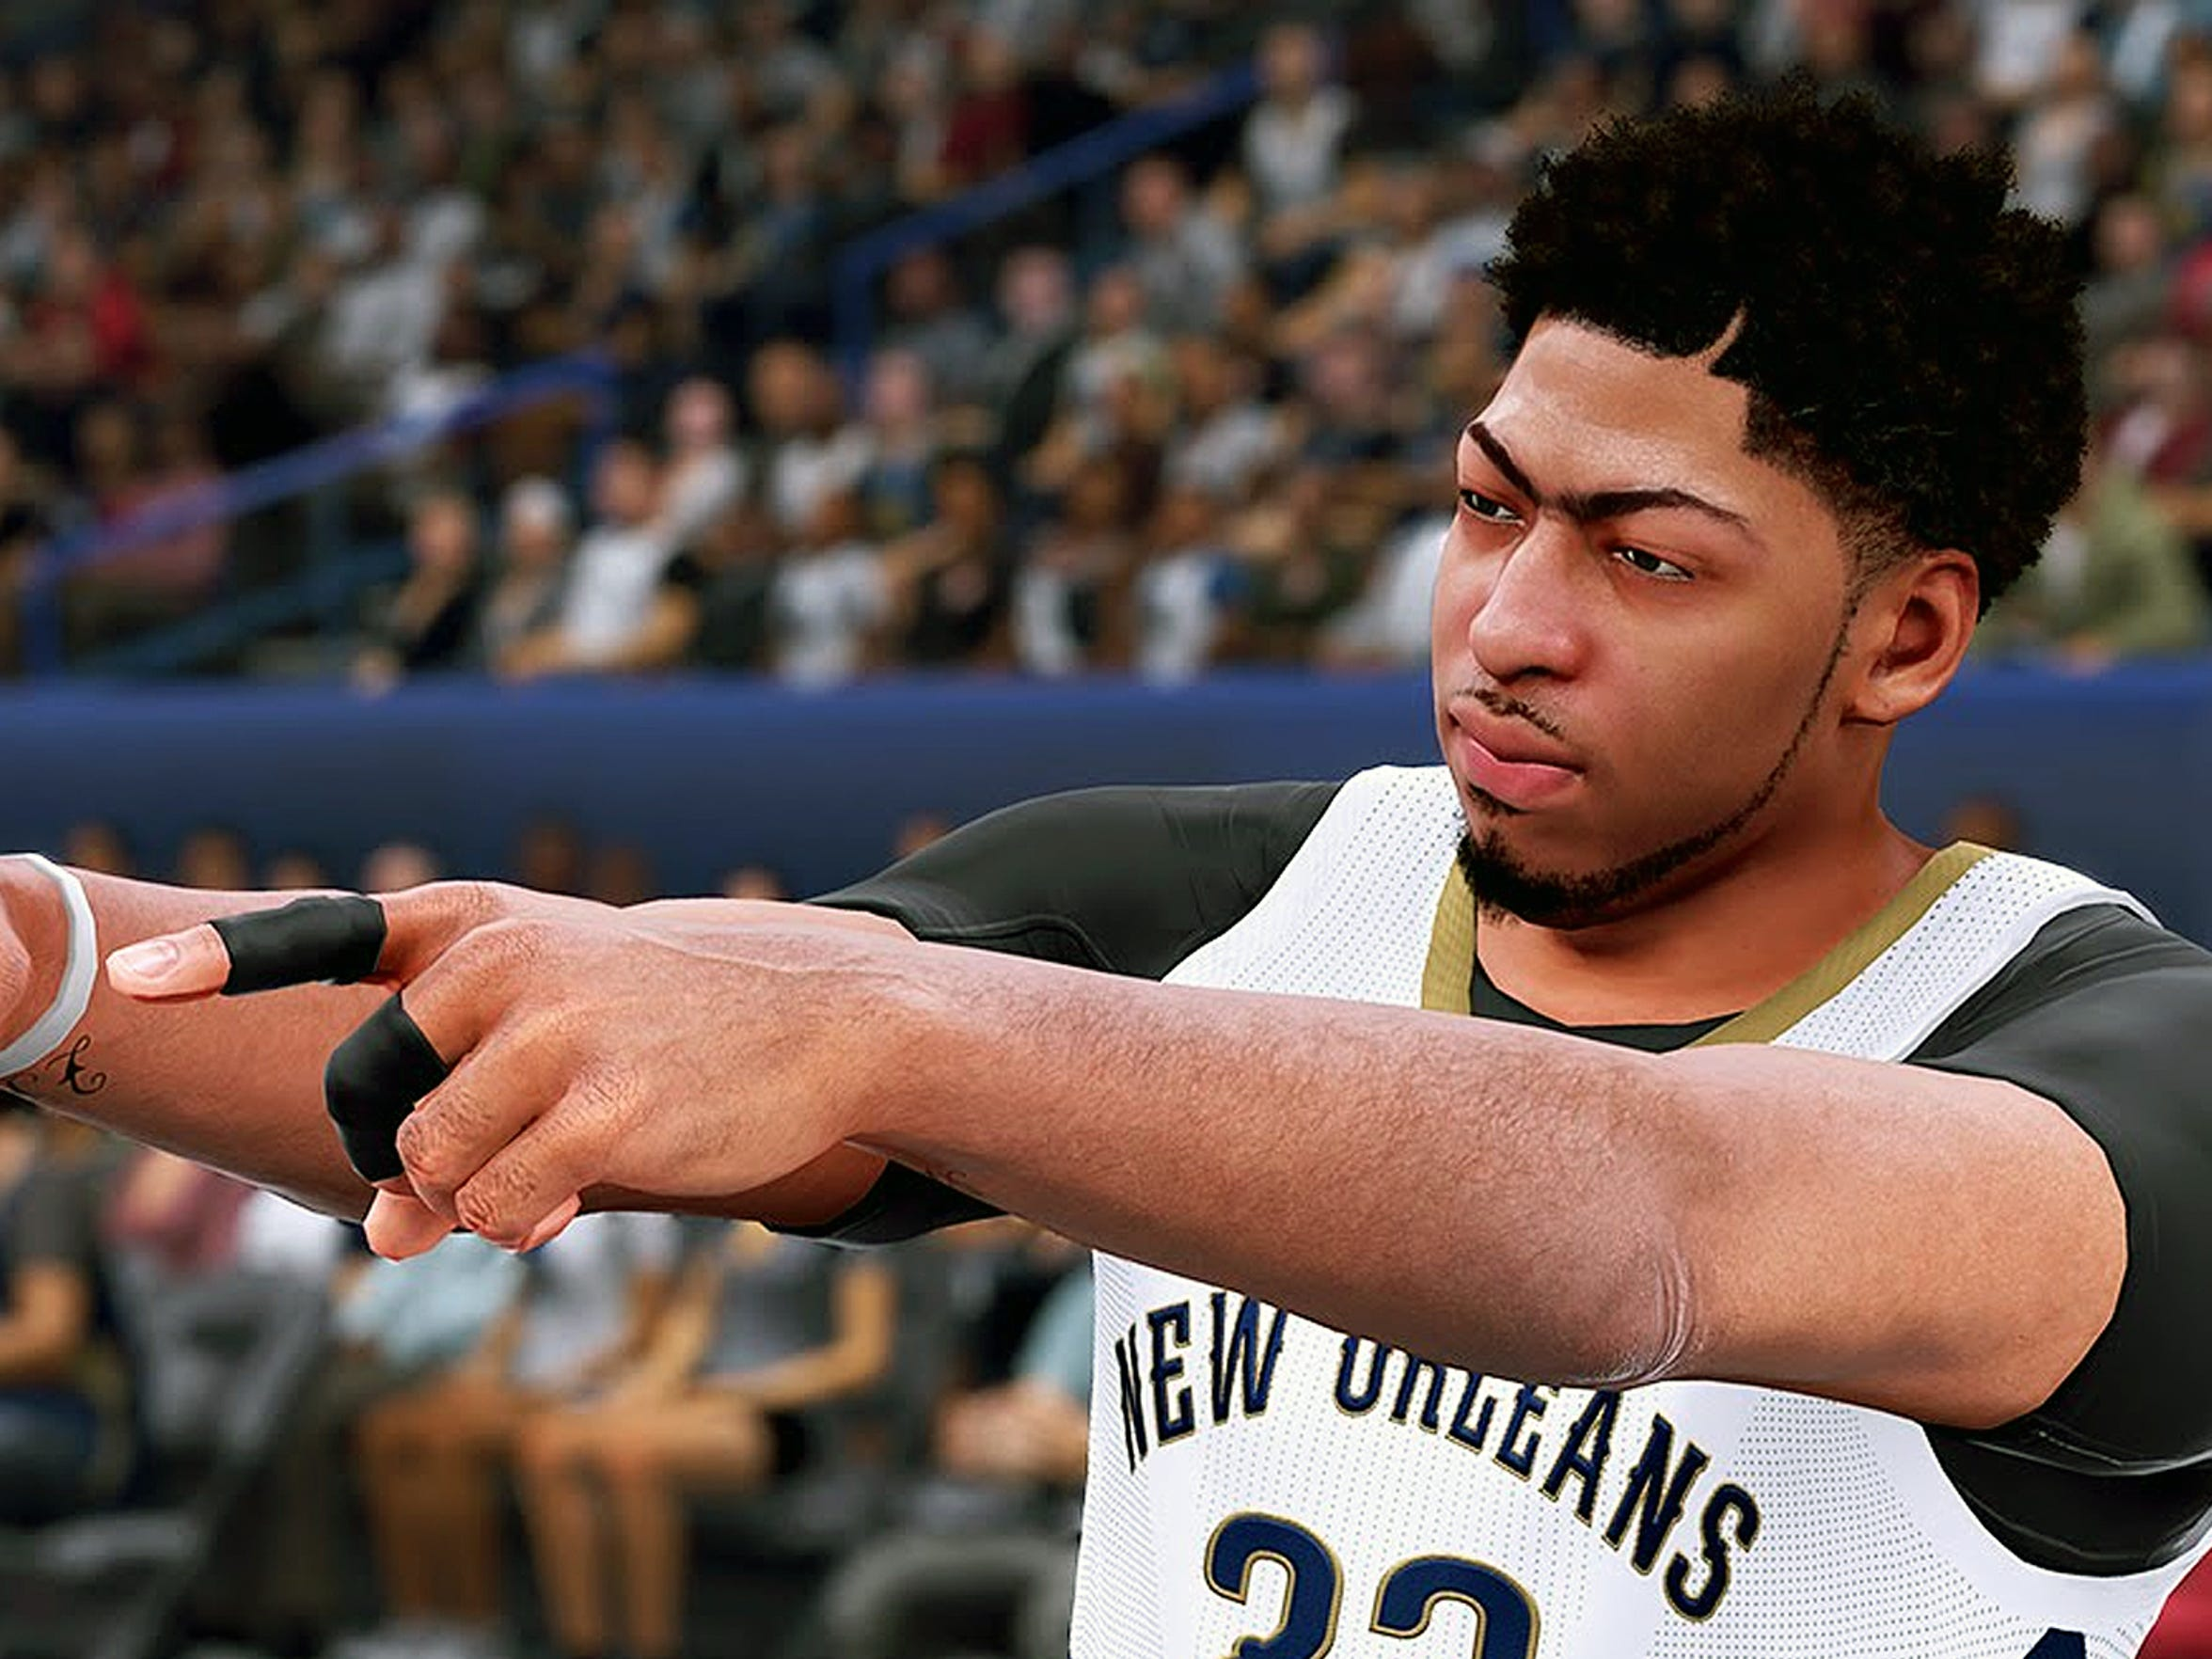 Anthony Davis' trademark unibrow is recreated in all